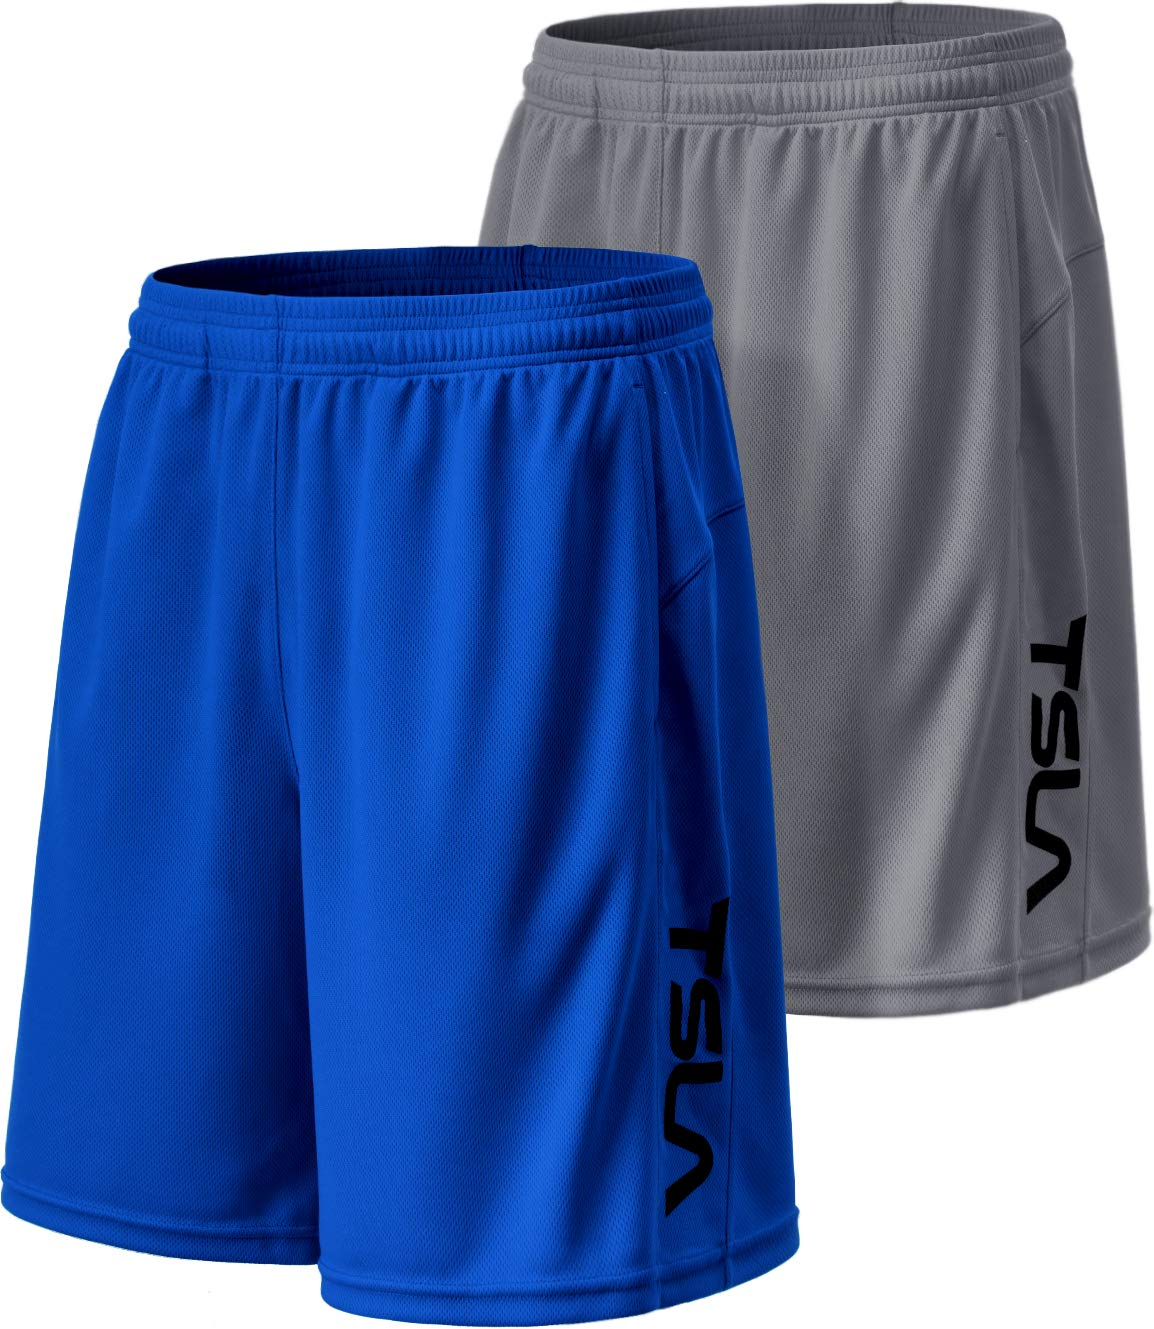 TSLA Men's HyperDri Cool Quick-Dry Active Lightweight Workout Performance Shorts (Pack of 2), Hyper Dri Dual Pack(mbh22) - Grey/Blue, Small